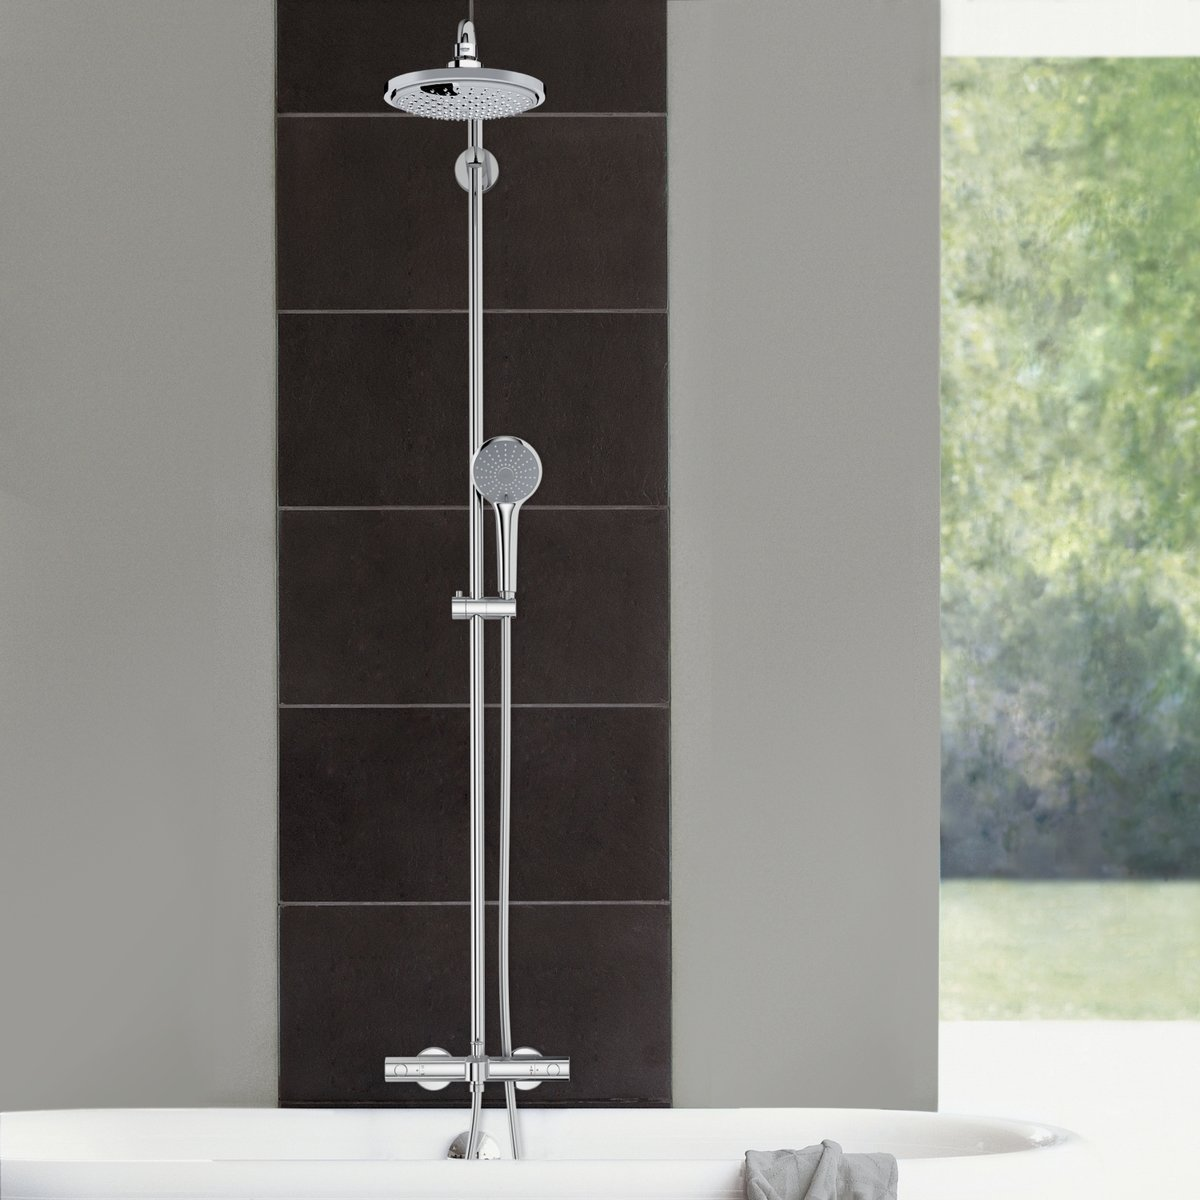 grohe rainshower syst me de douche avec robinet de bain thermostatique avec aquadimmer et douche. Black Bedroom Furniture Sets. Home Design Ideas